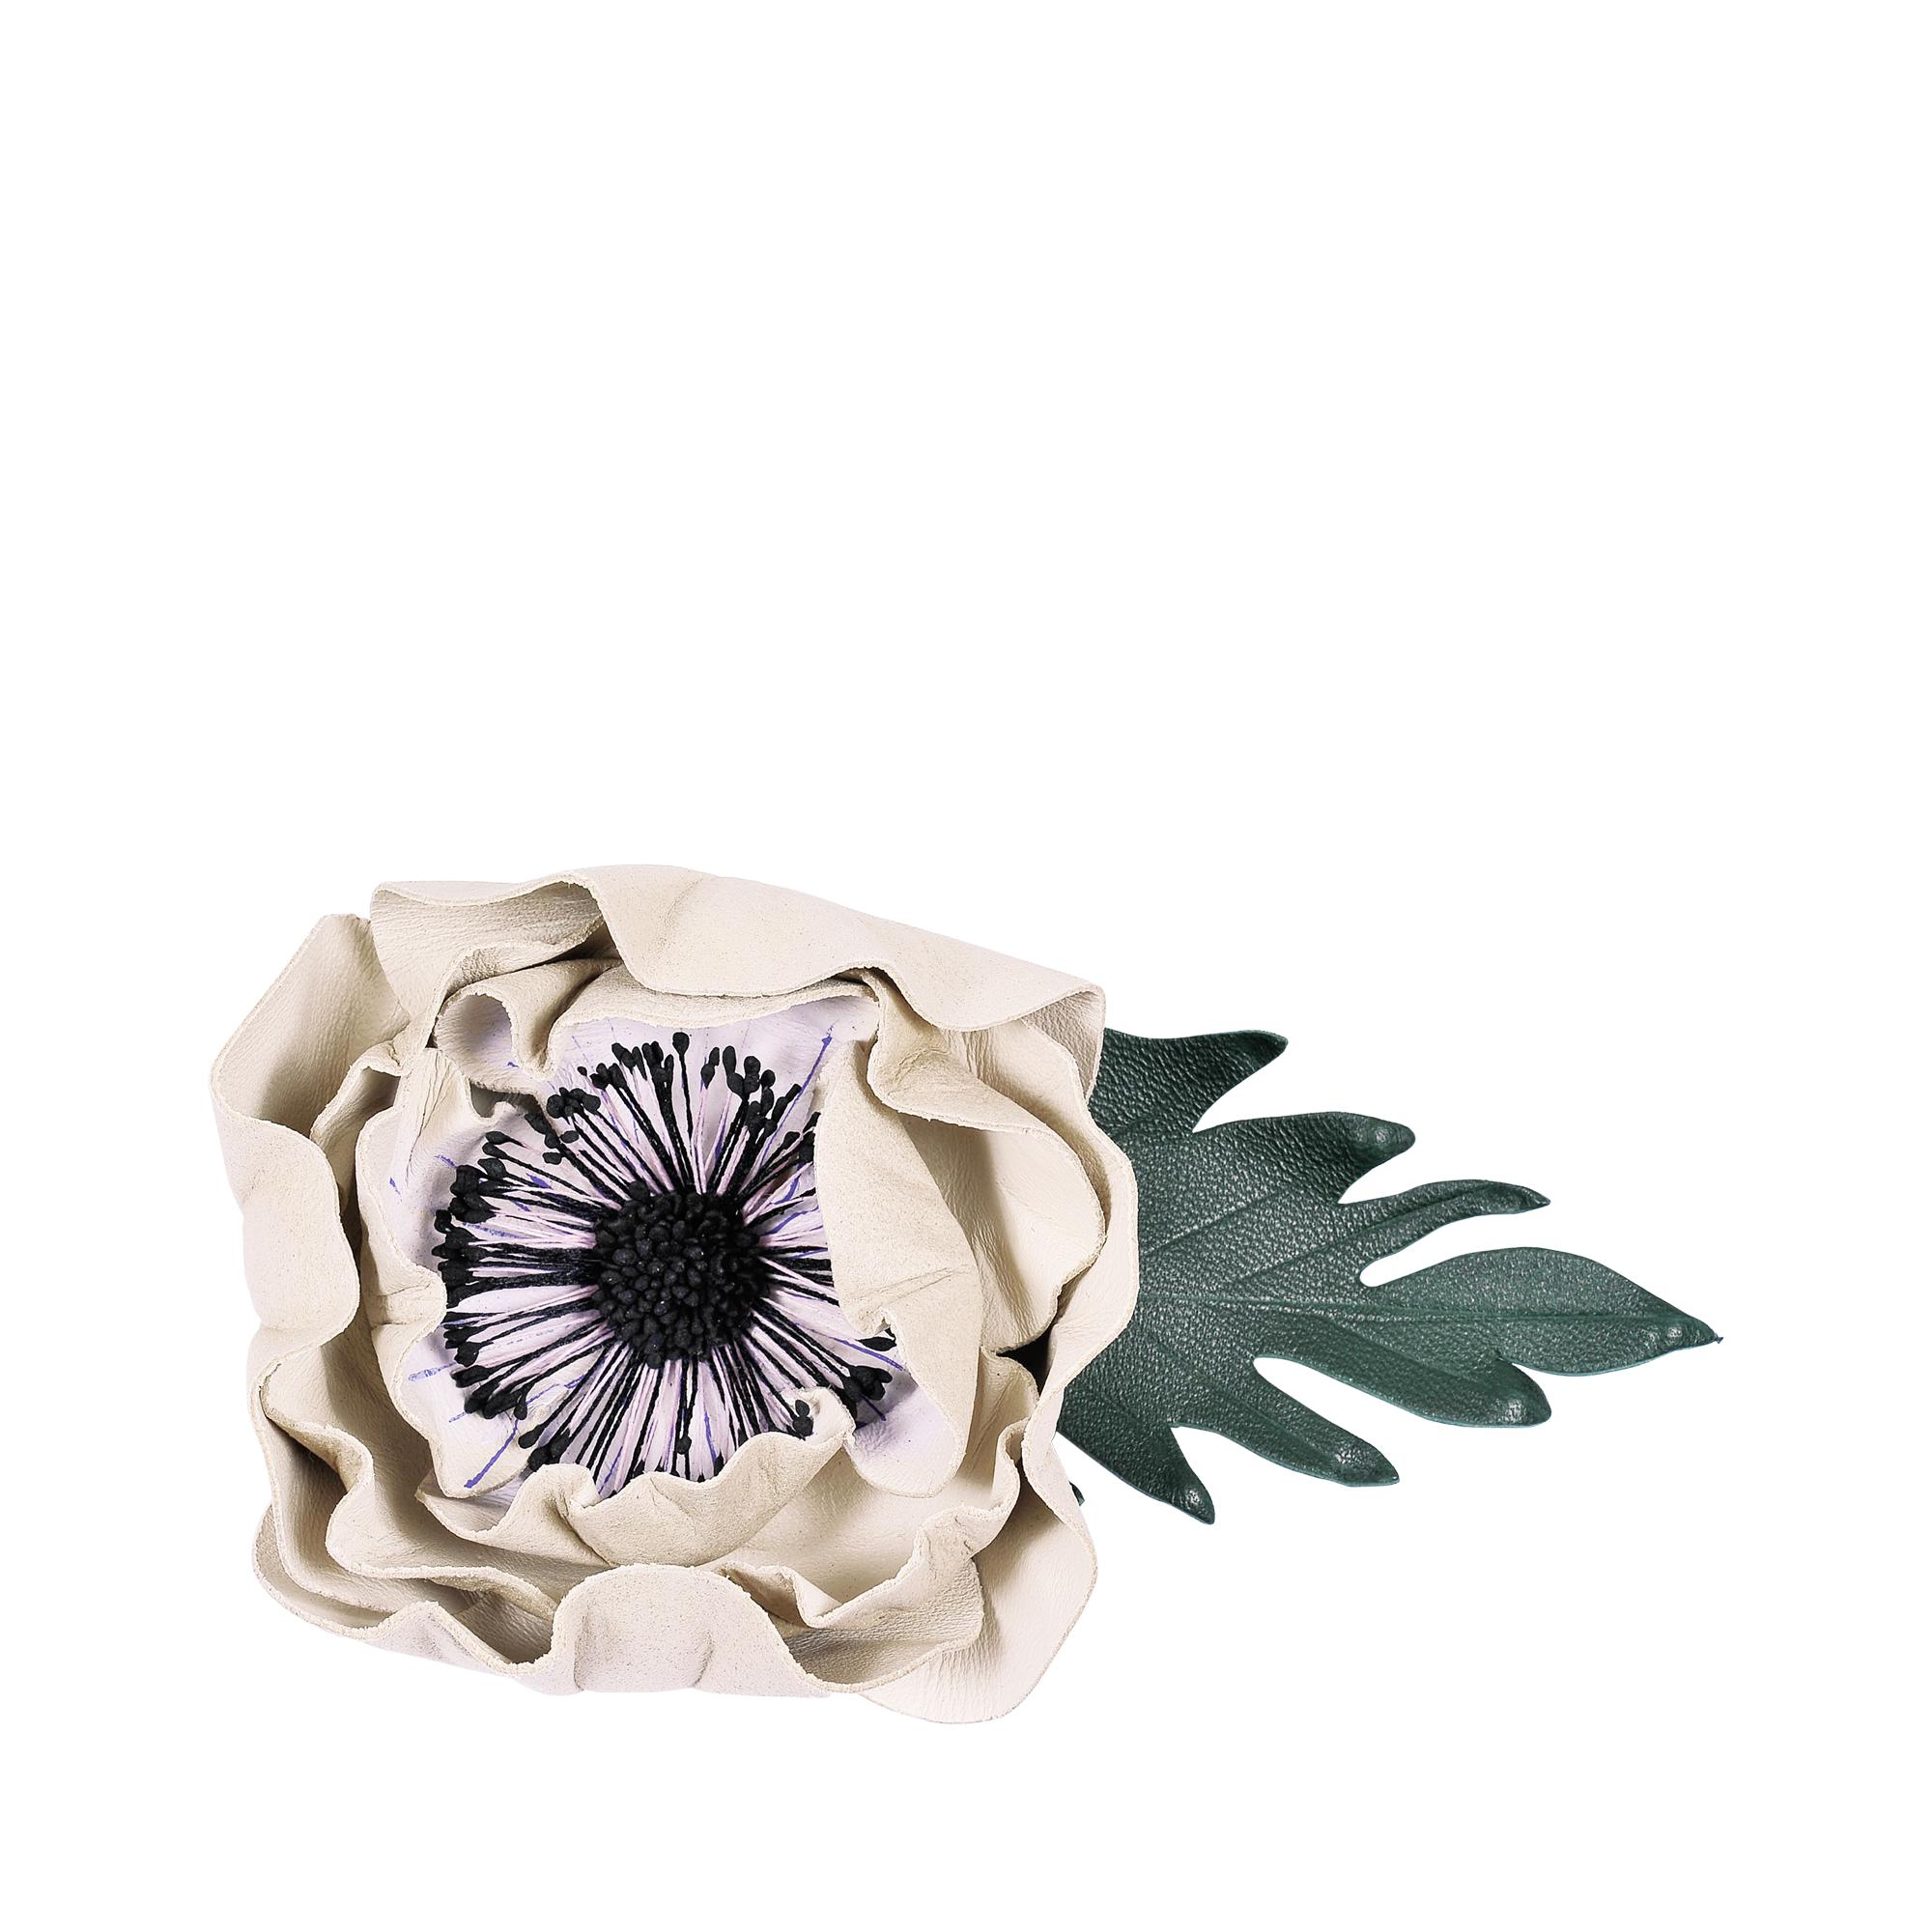 Sonia Rykiel Anemone Brooch in White Leather